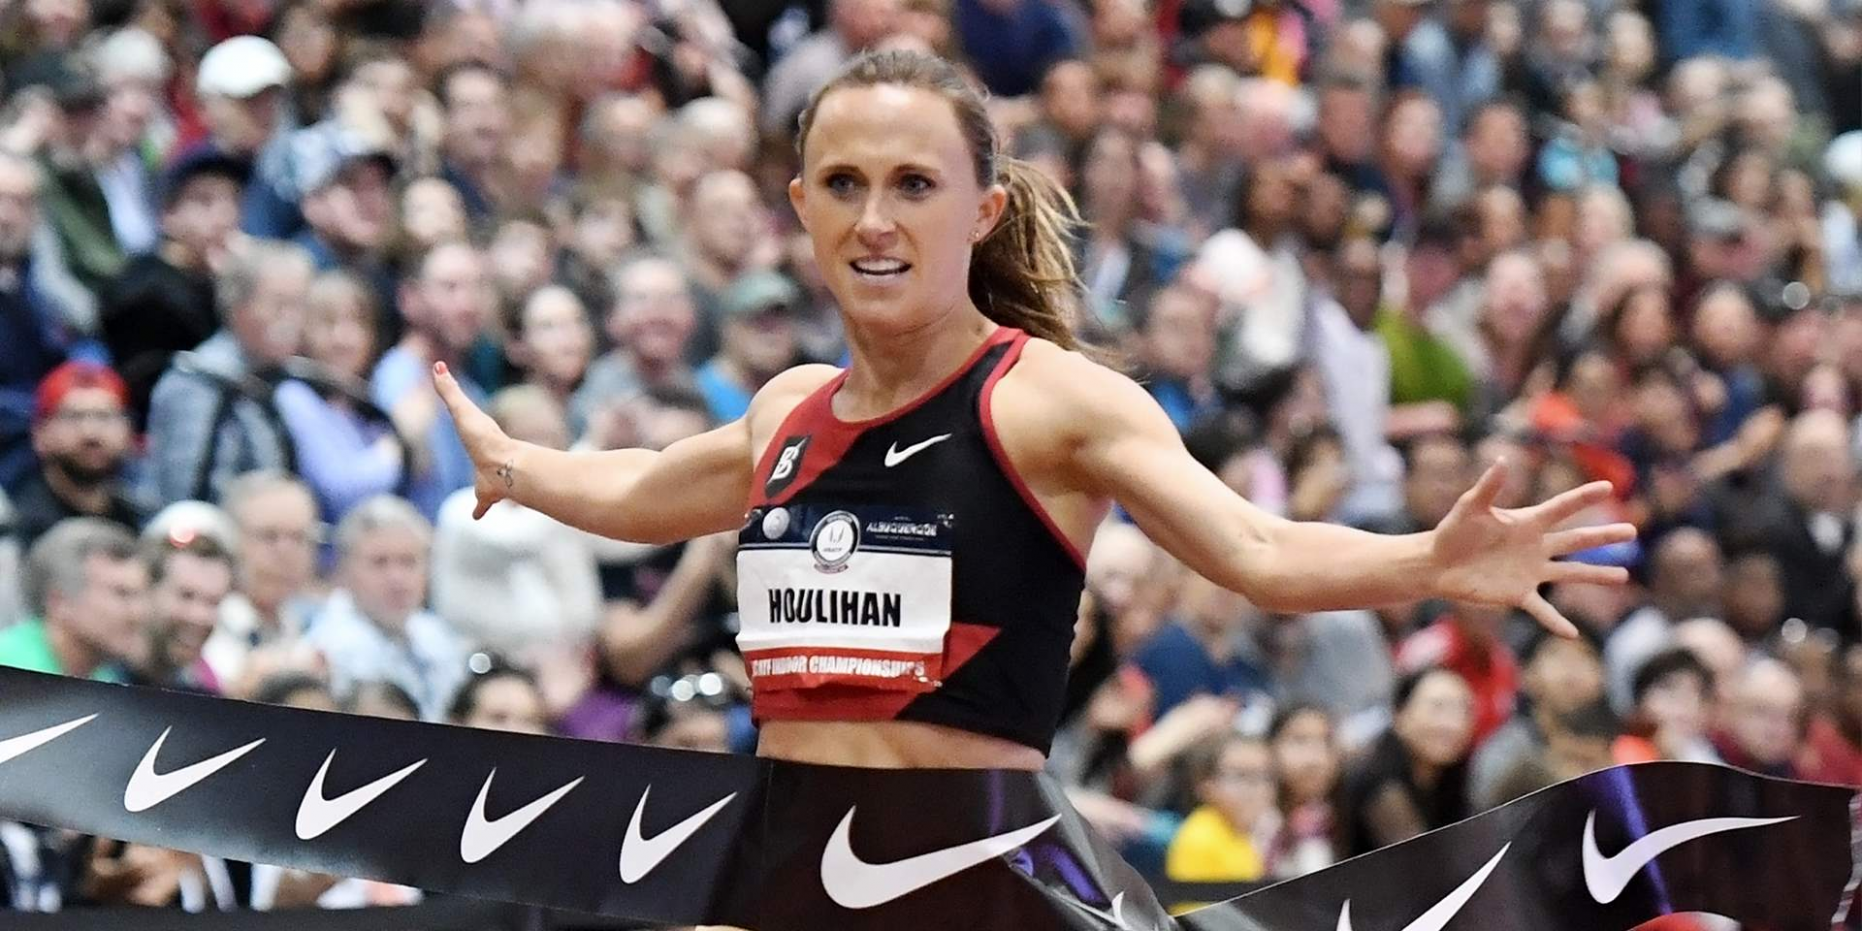 Competition schedule released for 12 Toyota USATF Indoor ...